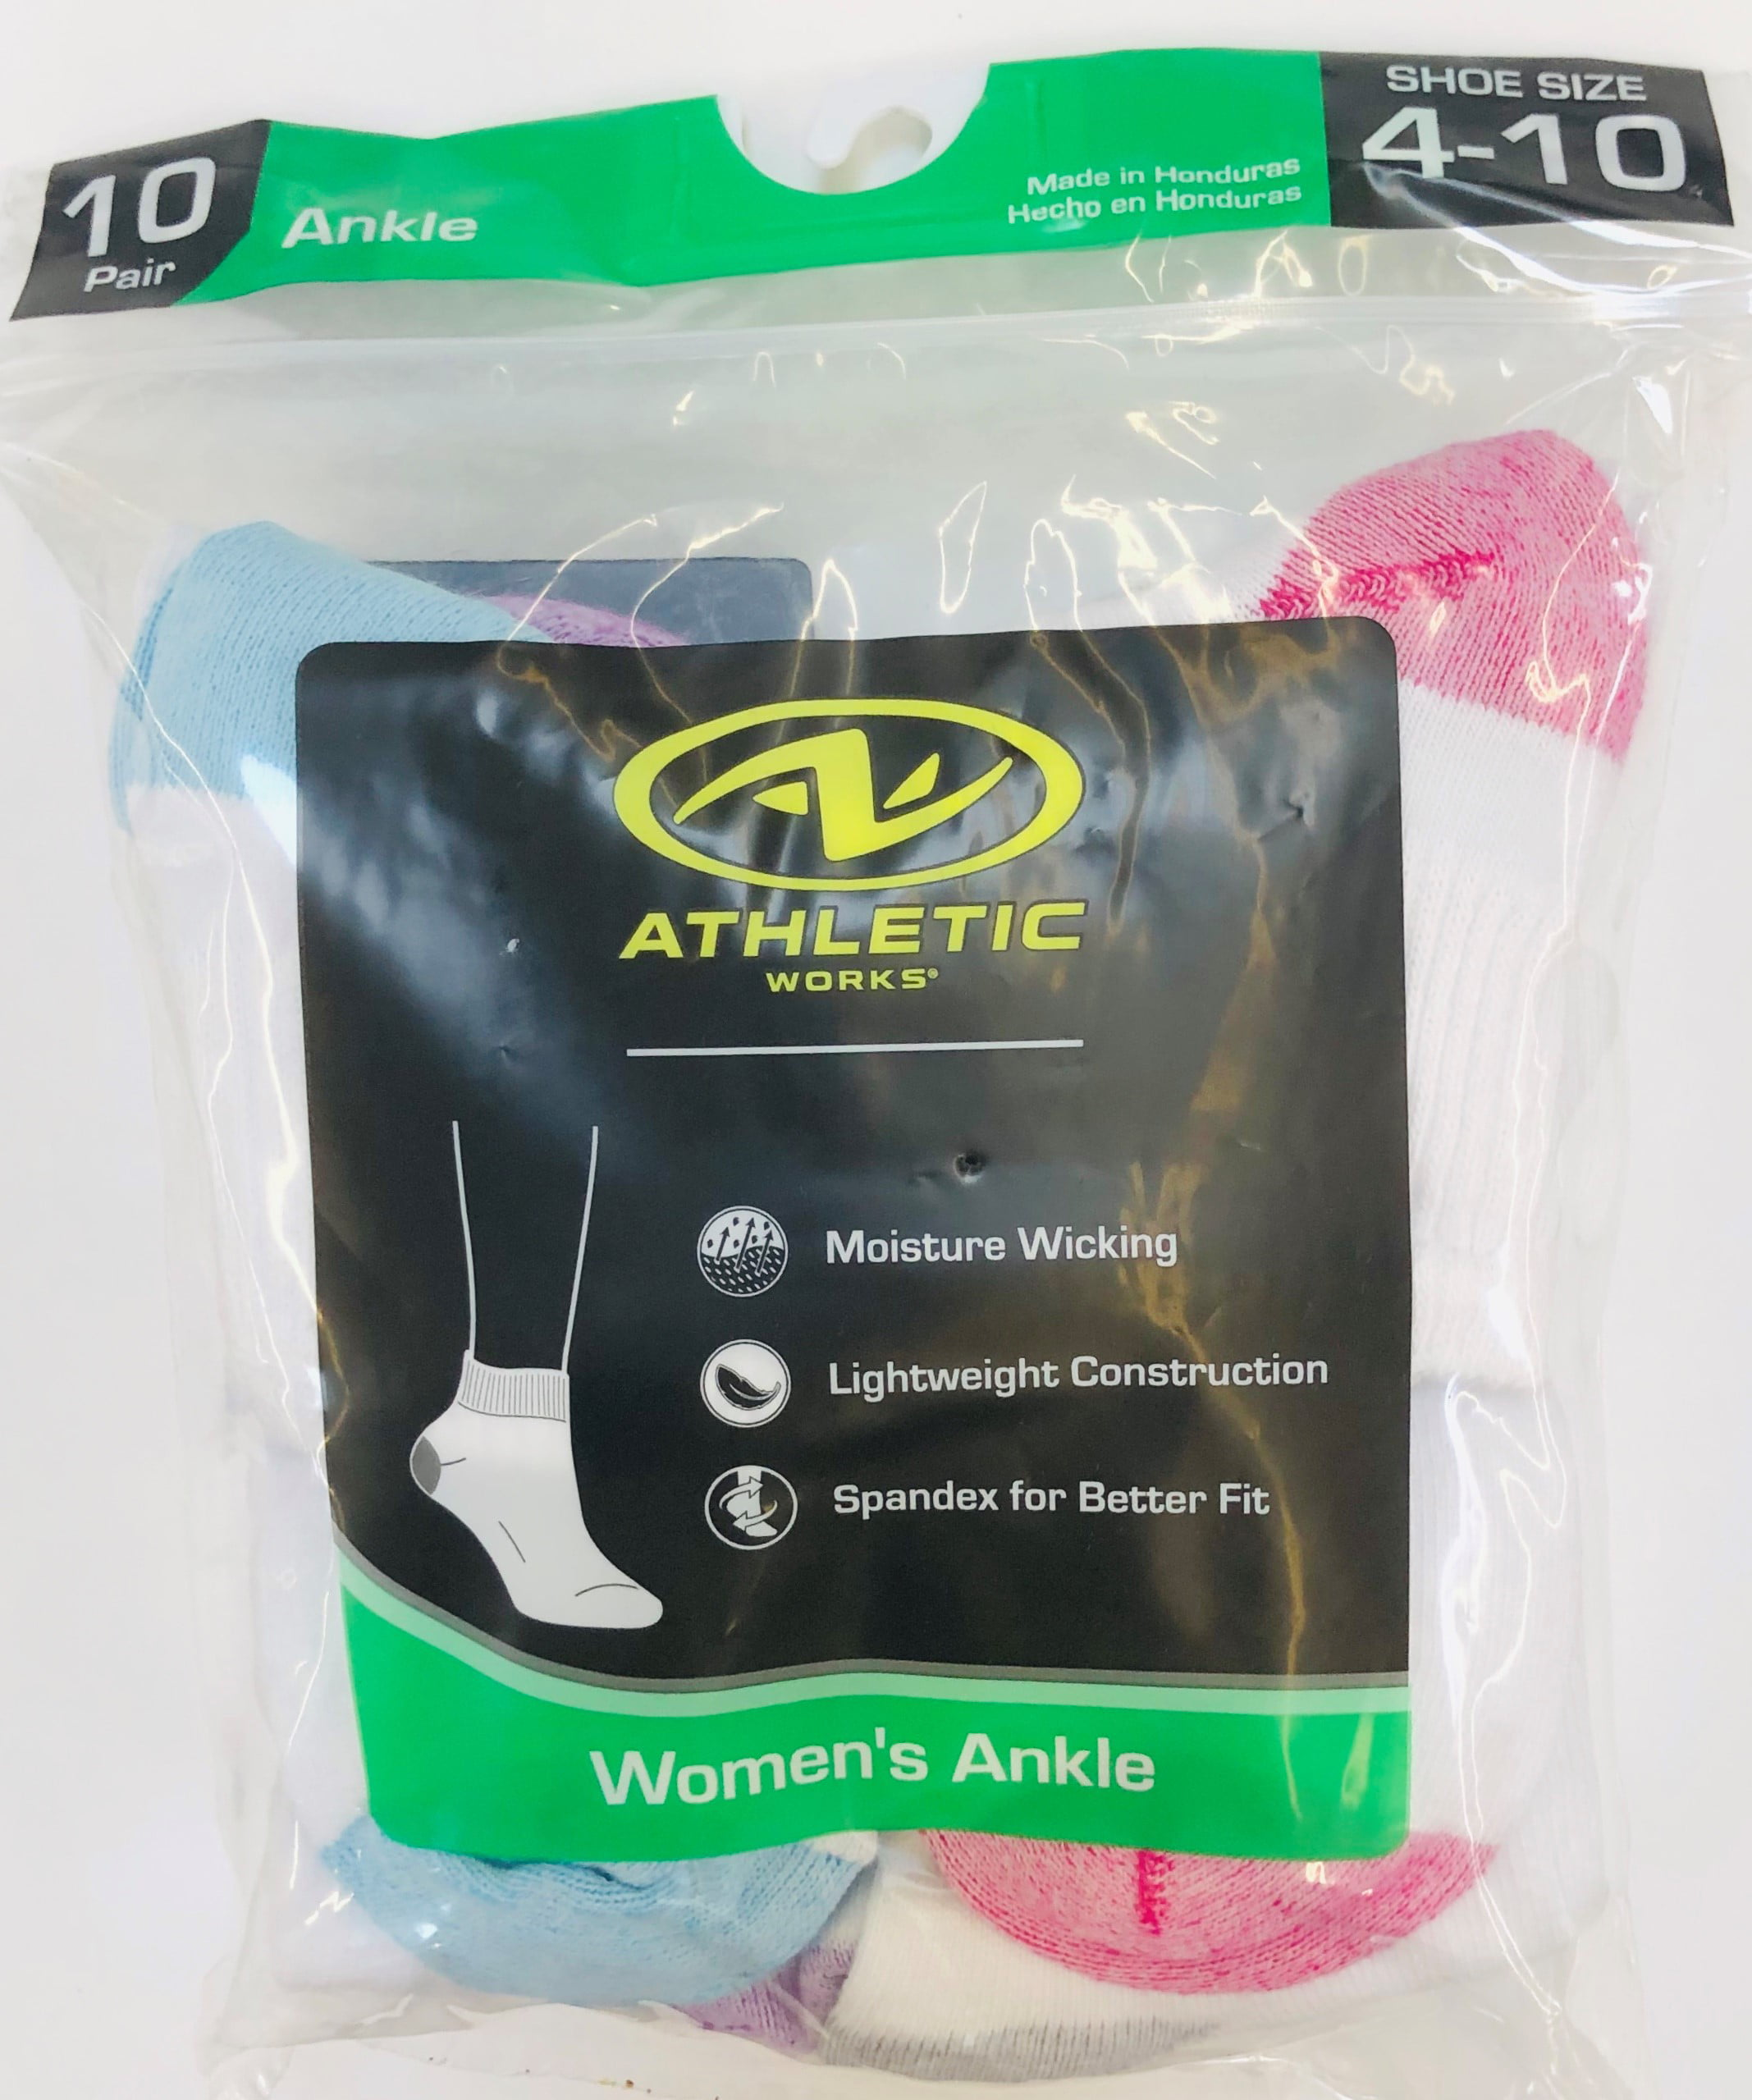 Athletic Works Women's Flat-Knit Ankle Socks, 10 Pairs, White with Colors, 4-10